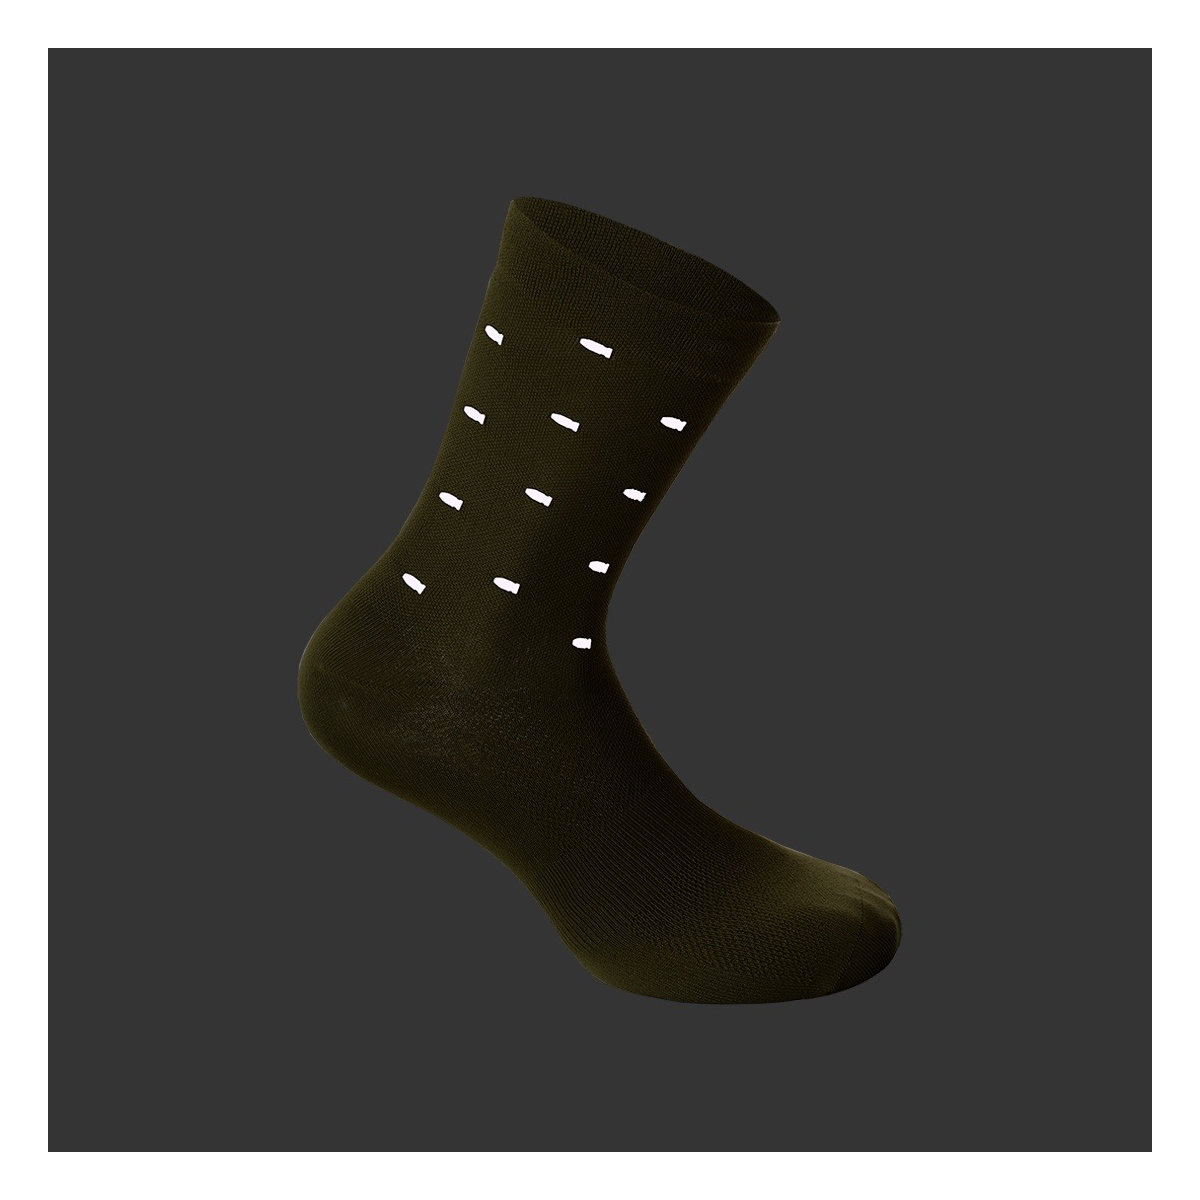 Reflective Bullets Socks